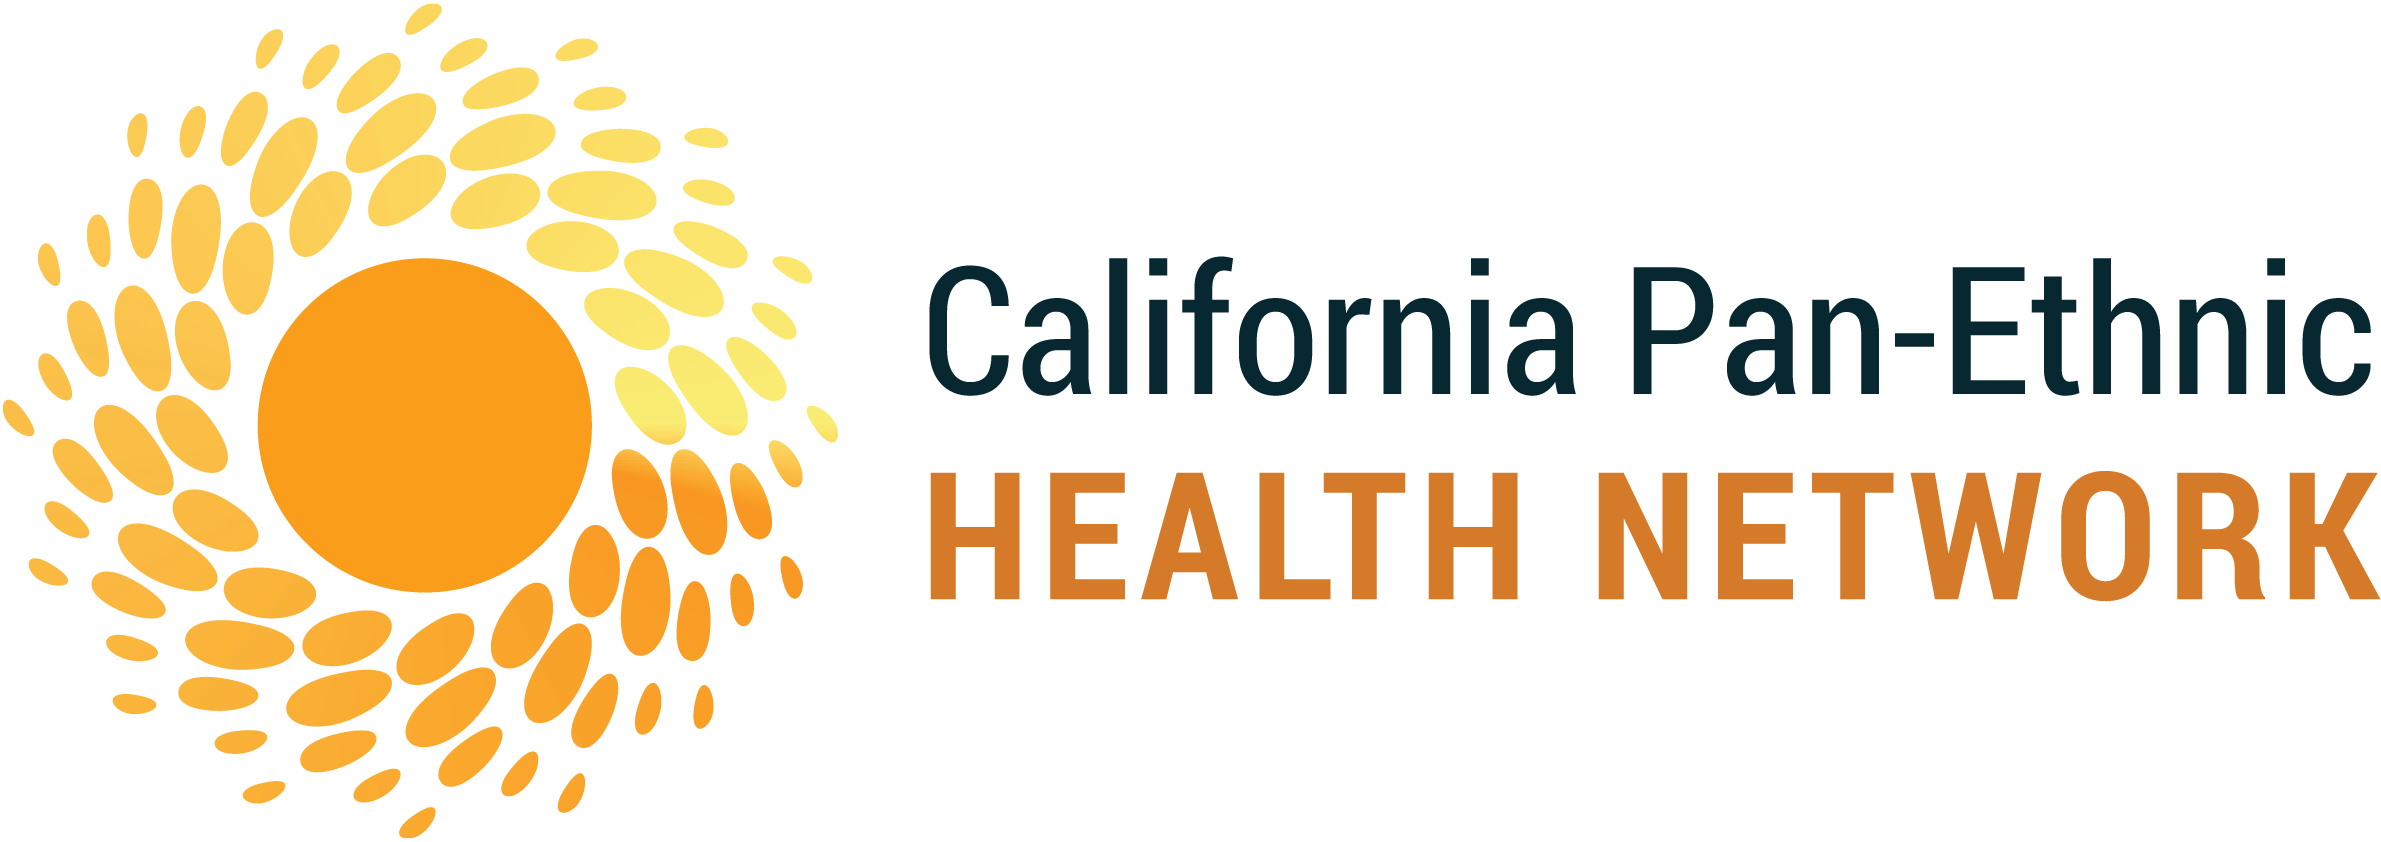 California Pan-Ethnic Health Network